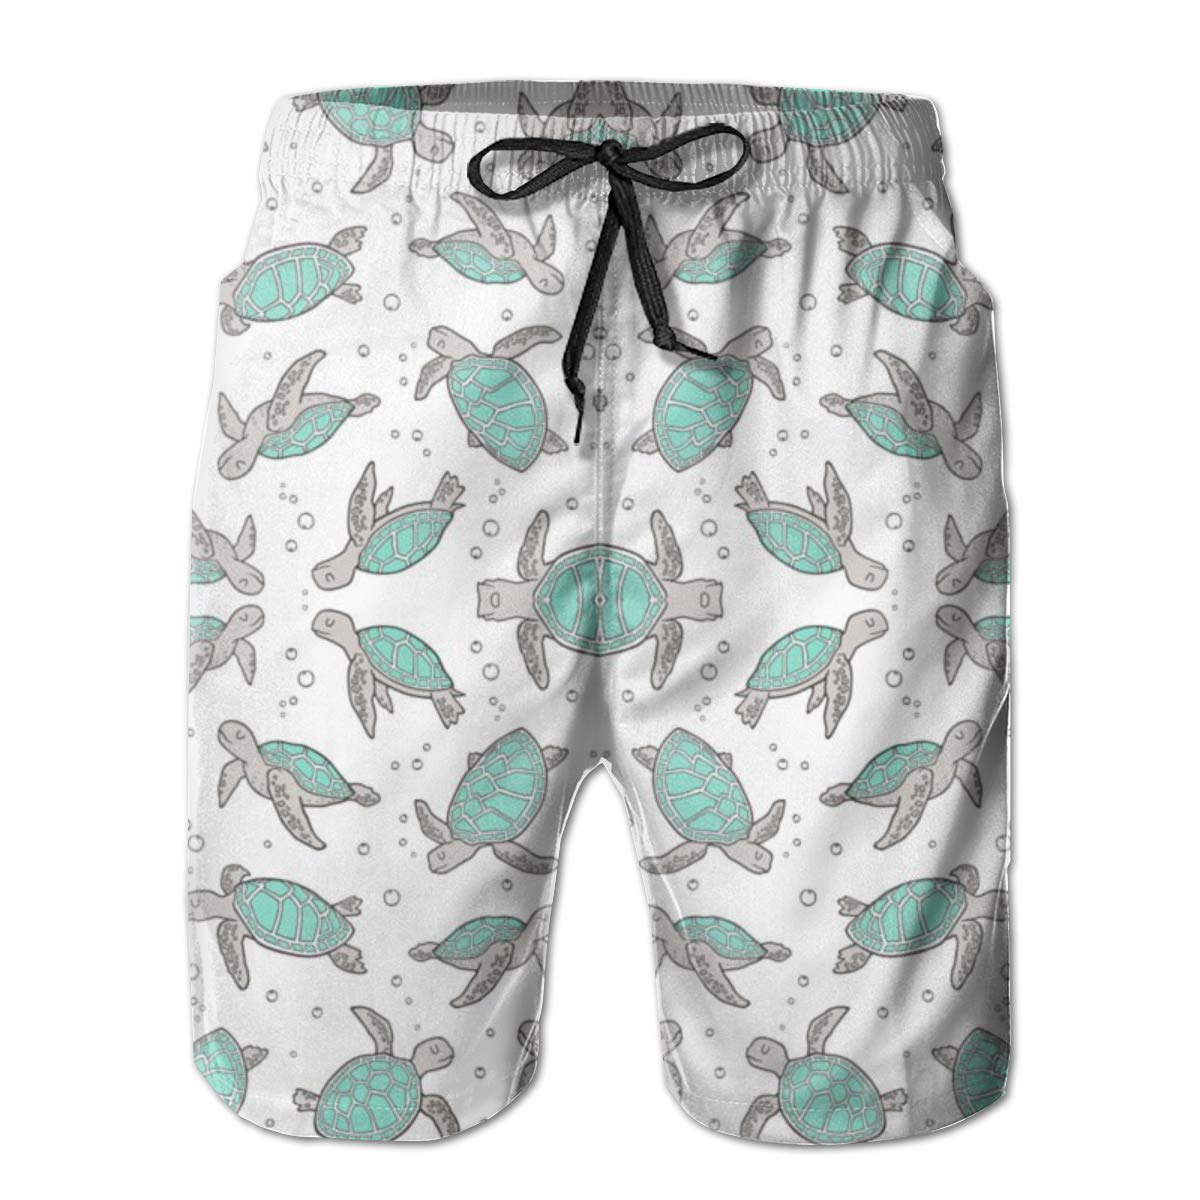 Boardshort Sea Turtles Nautical Boys Teen Quick Dry Sports Trunks